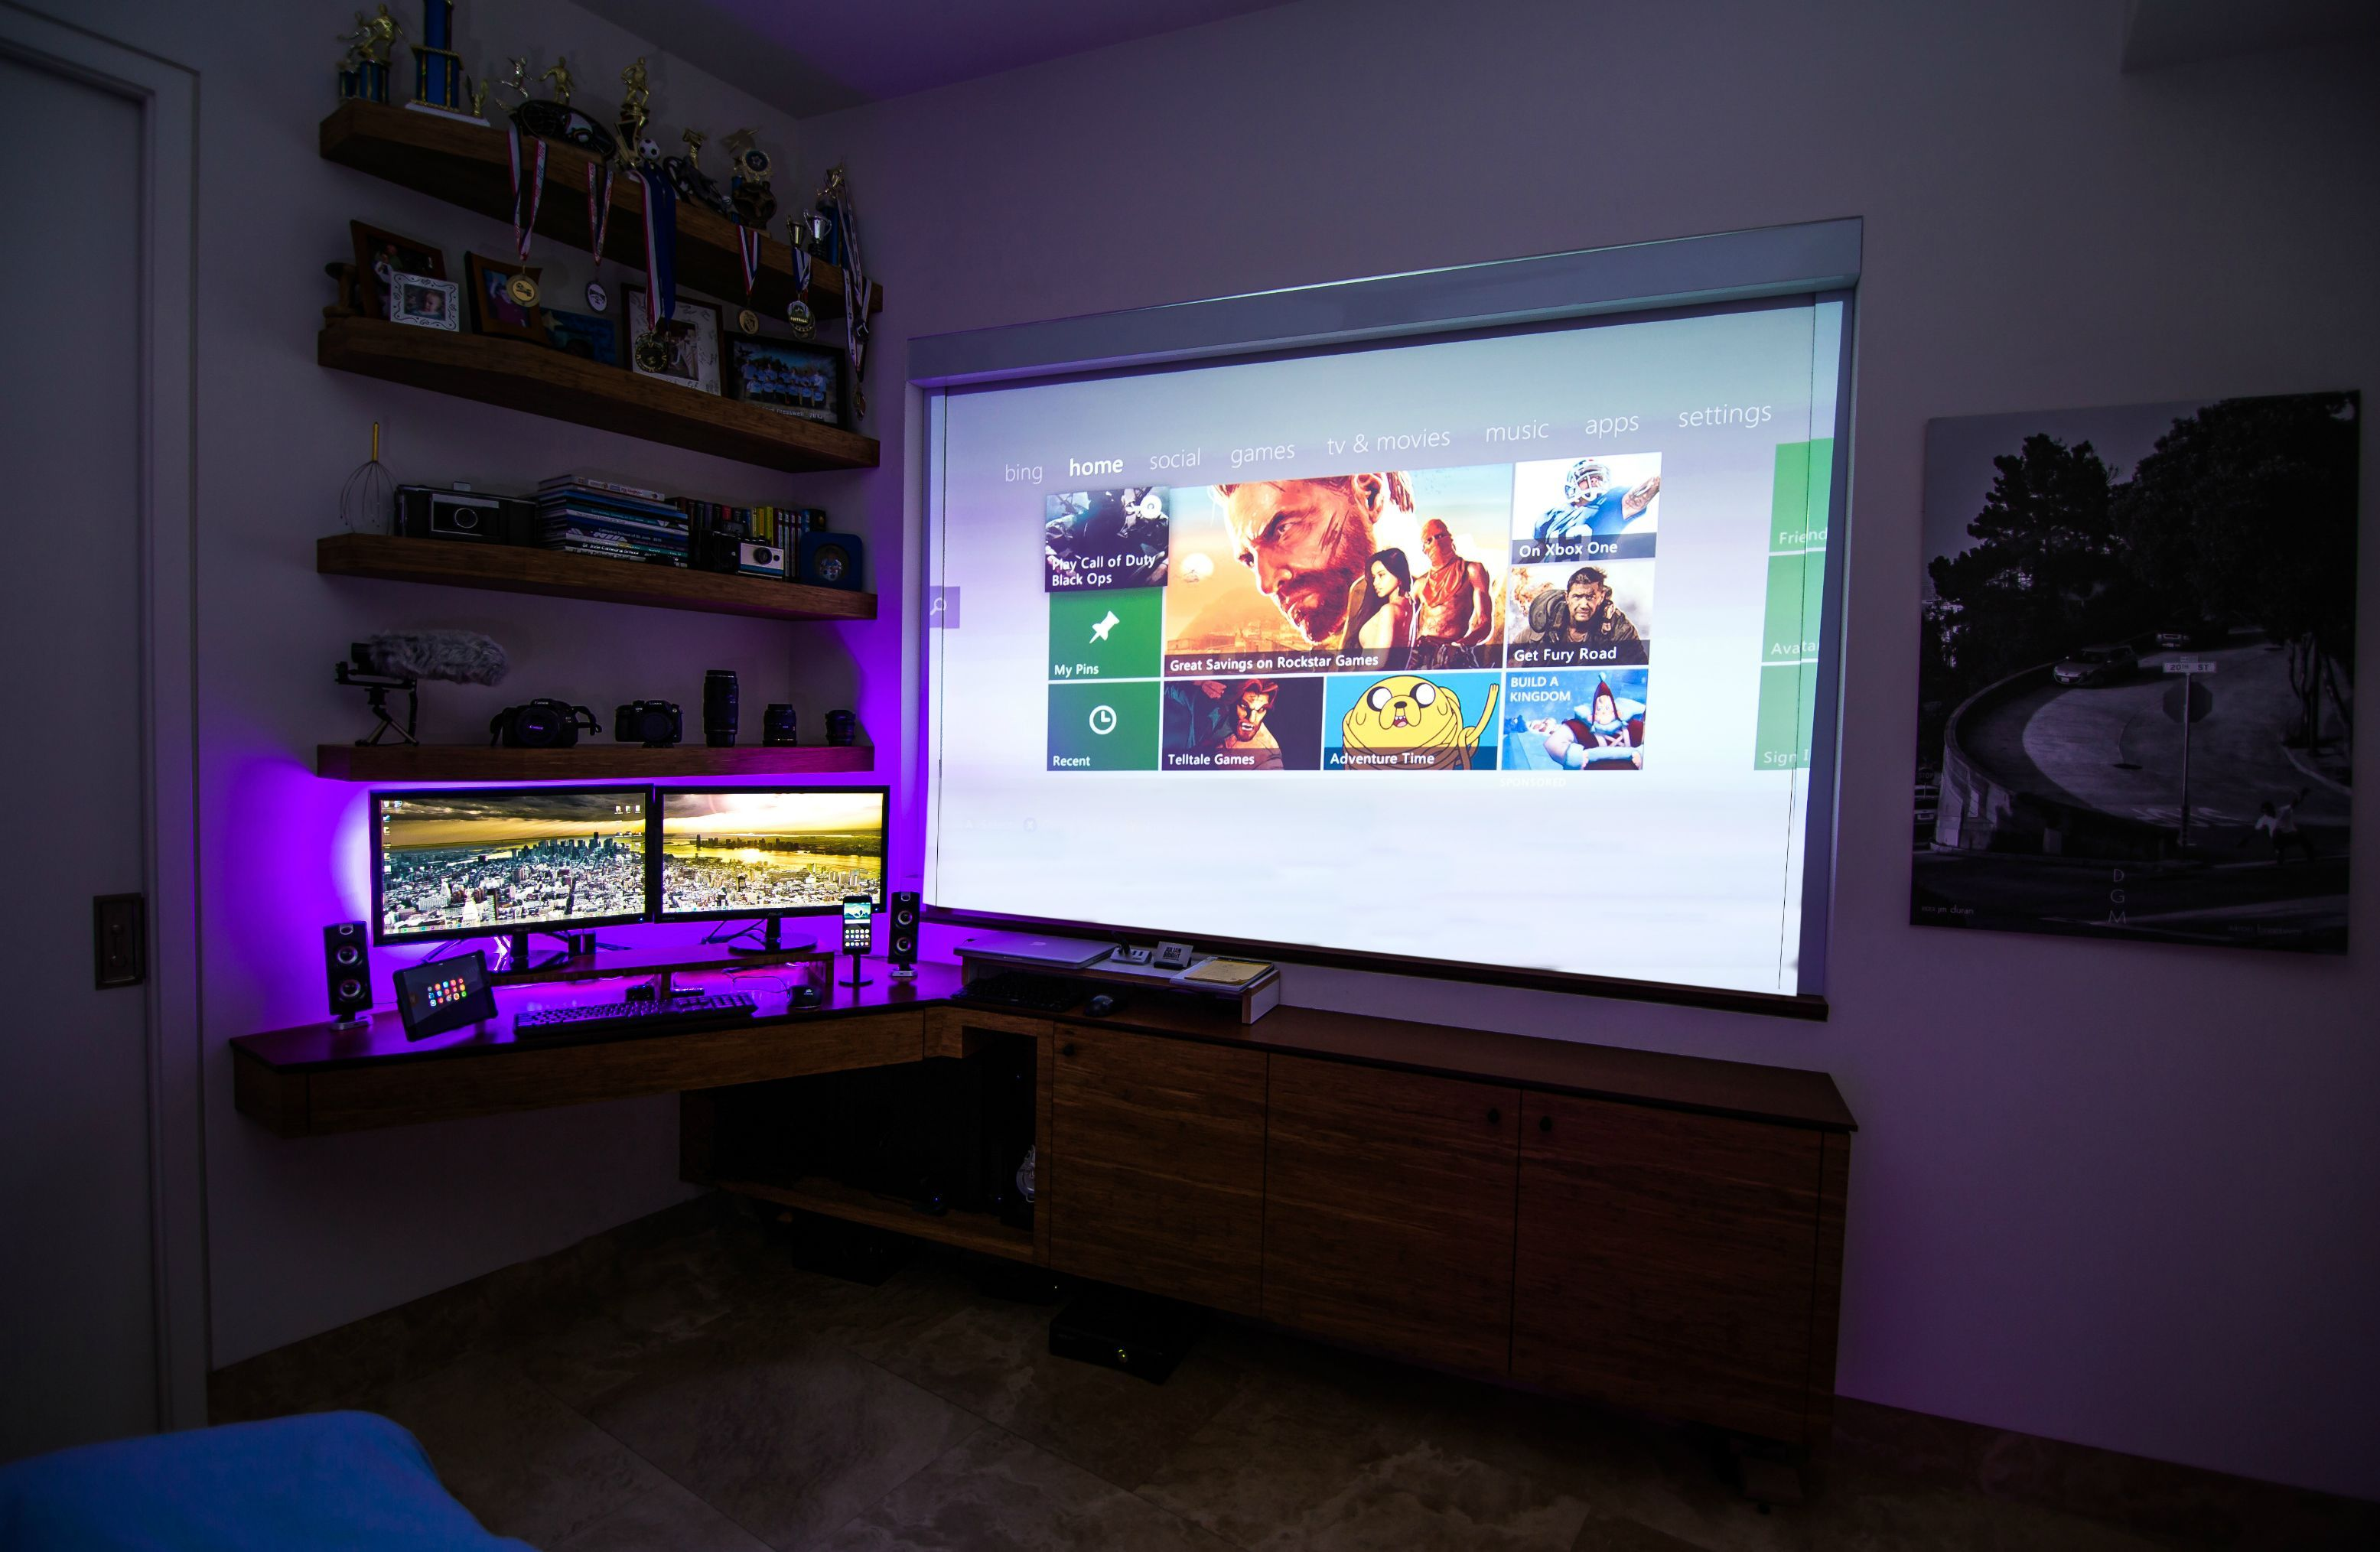 Nature custom dual monitor setup projector monitor How to make a gaming setup in your room